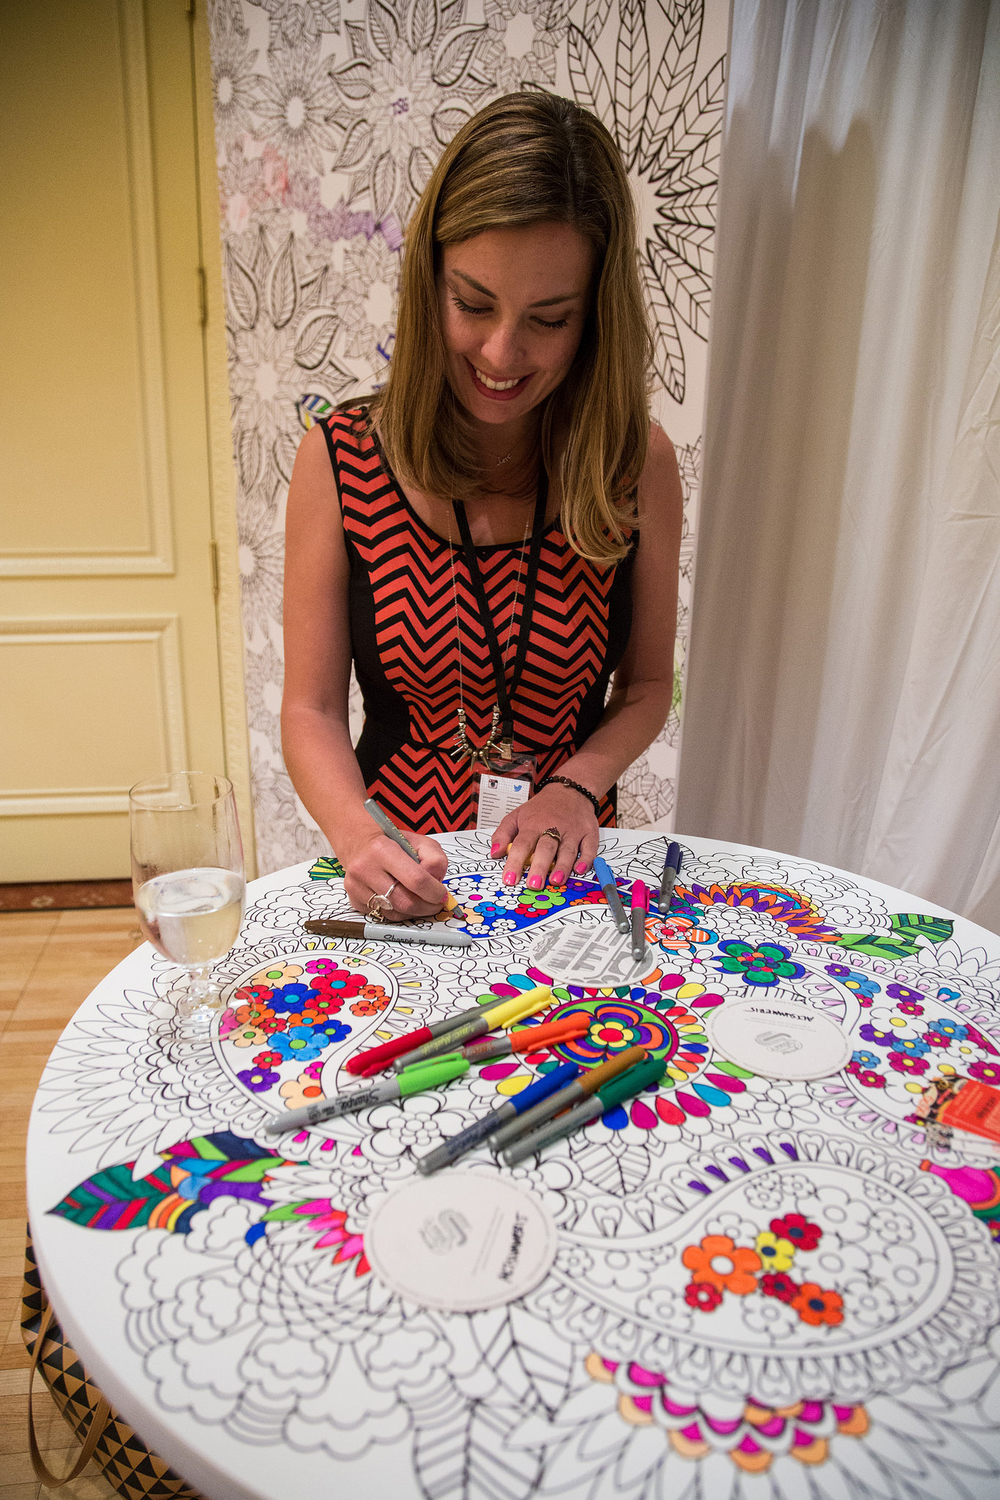 Alt Summer 2015 Squarespace Lounge featuring Artwork by Jenean Morrison.   photo credit:  Alt Summit